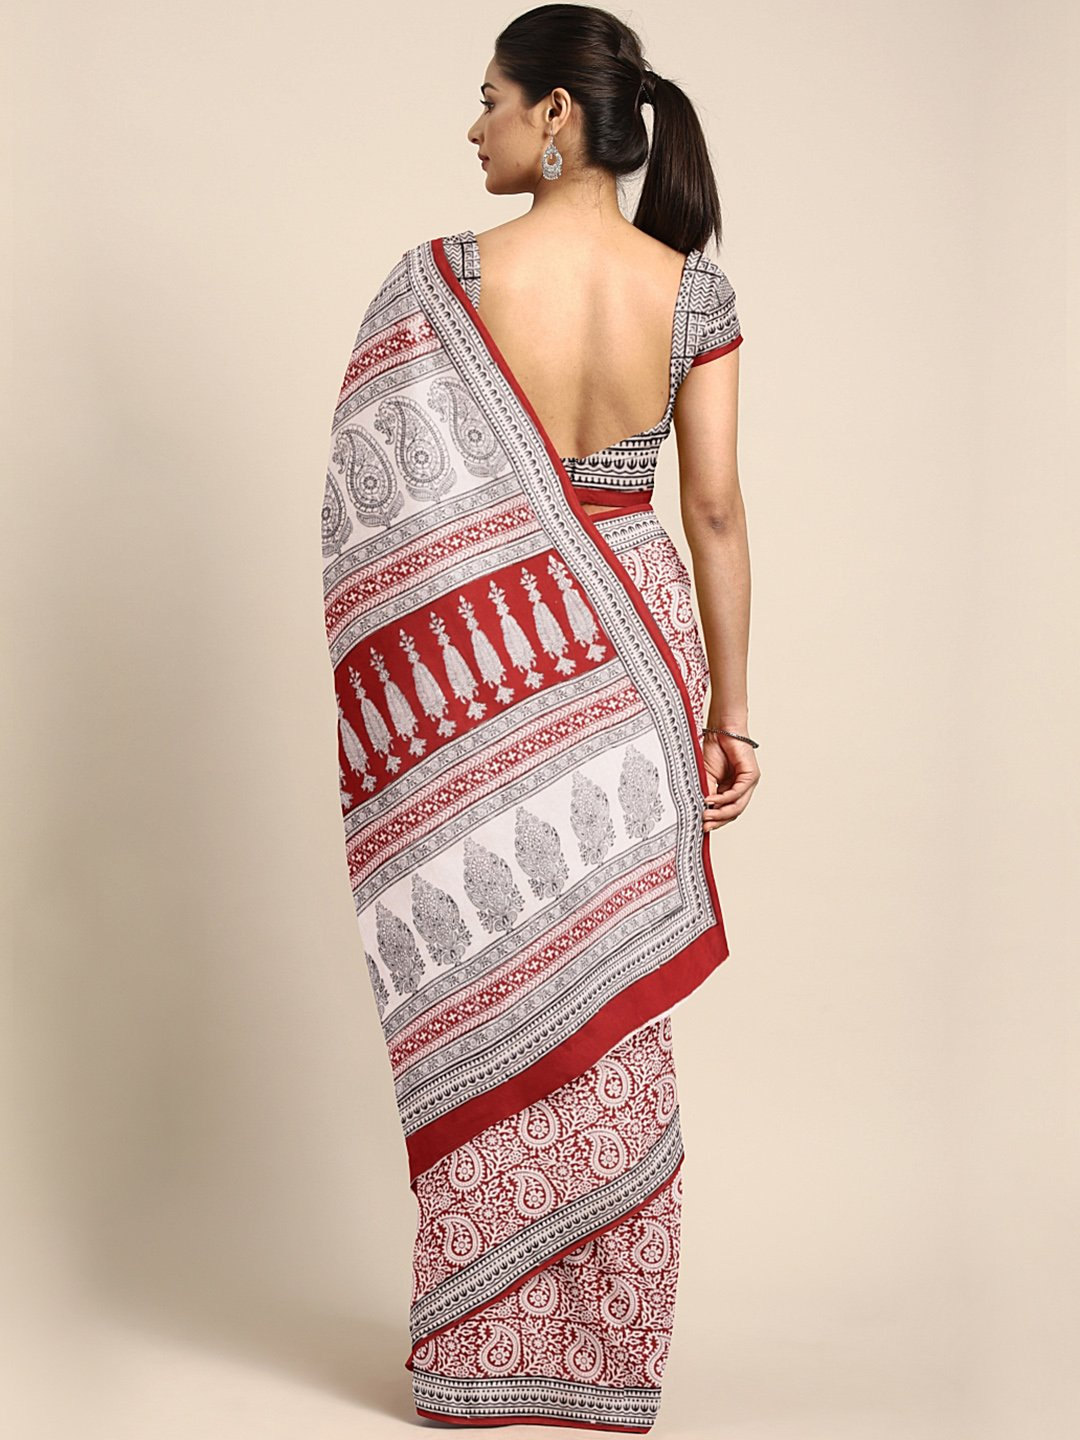 Off-White Red Printed Saree-Saree-Kalakari India-MYBASA0009-Bagh, Cotton, Geographical Indication, Hand Blocks, Hand Crafted, Heritage Prints, Natural Dyes, Sarees, Sustainable Fabrics-[Linen,Ethnic,wear,Fashionista,Handloom,Handicraft,Indigo,blockprint,block,print,Cotton,Chanderi,Blue, latest,classy,party,bollywood,trendy,summer,style,traditional,formal,elegant,unique,style,hand,block,print, dabu,booti,gift,present,glamorous,affordable,collectible,Sari,Saree,printed, holi, Diwali, birthday, ann